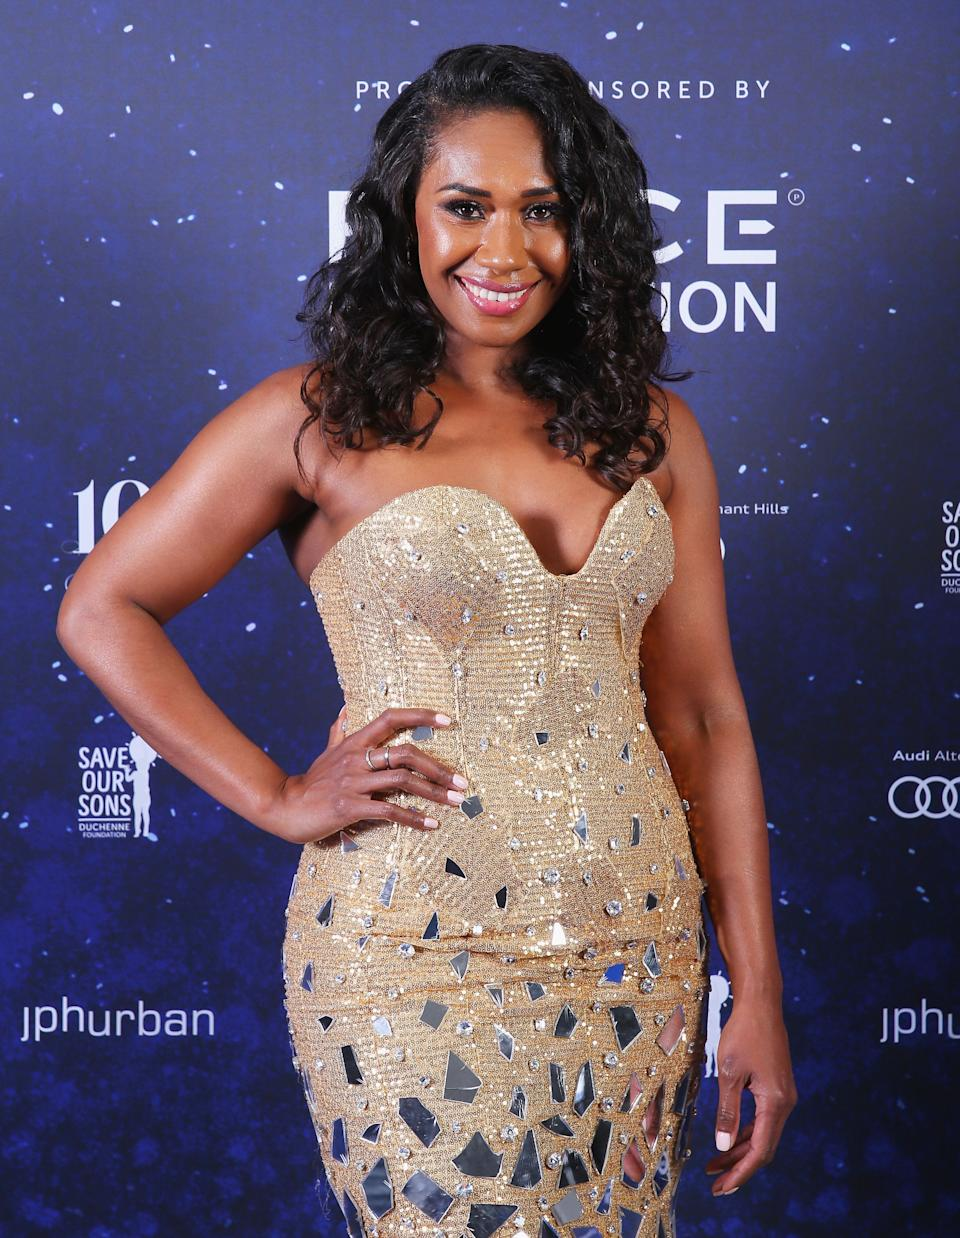 """Paulini Curuenavuli has said there's one thing she's continued to hear about co-star Colin Fassnidge, and that's how """"attractive"""" the celebrity chef is. (Photo: Don Arnold via Getty Images)"""